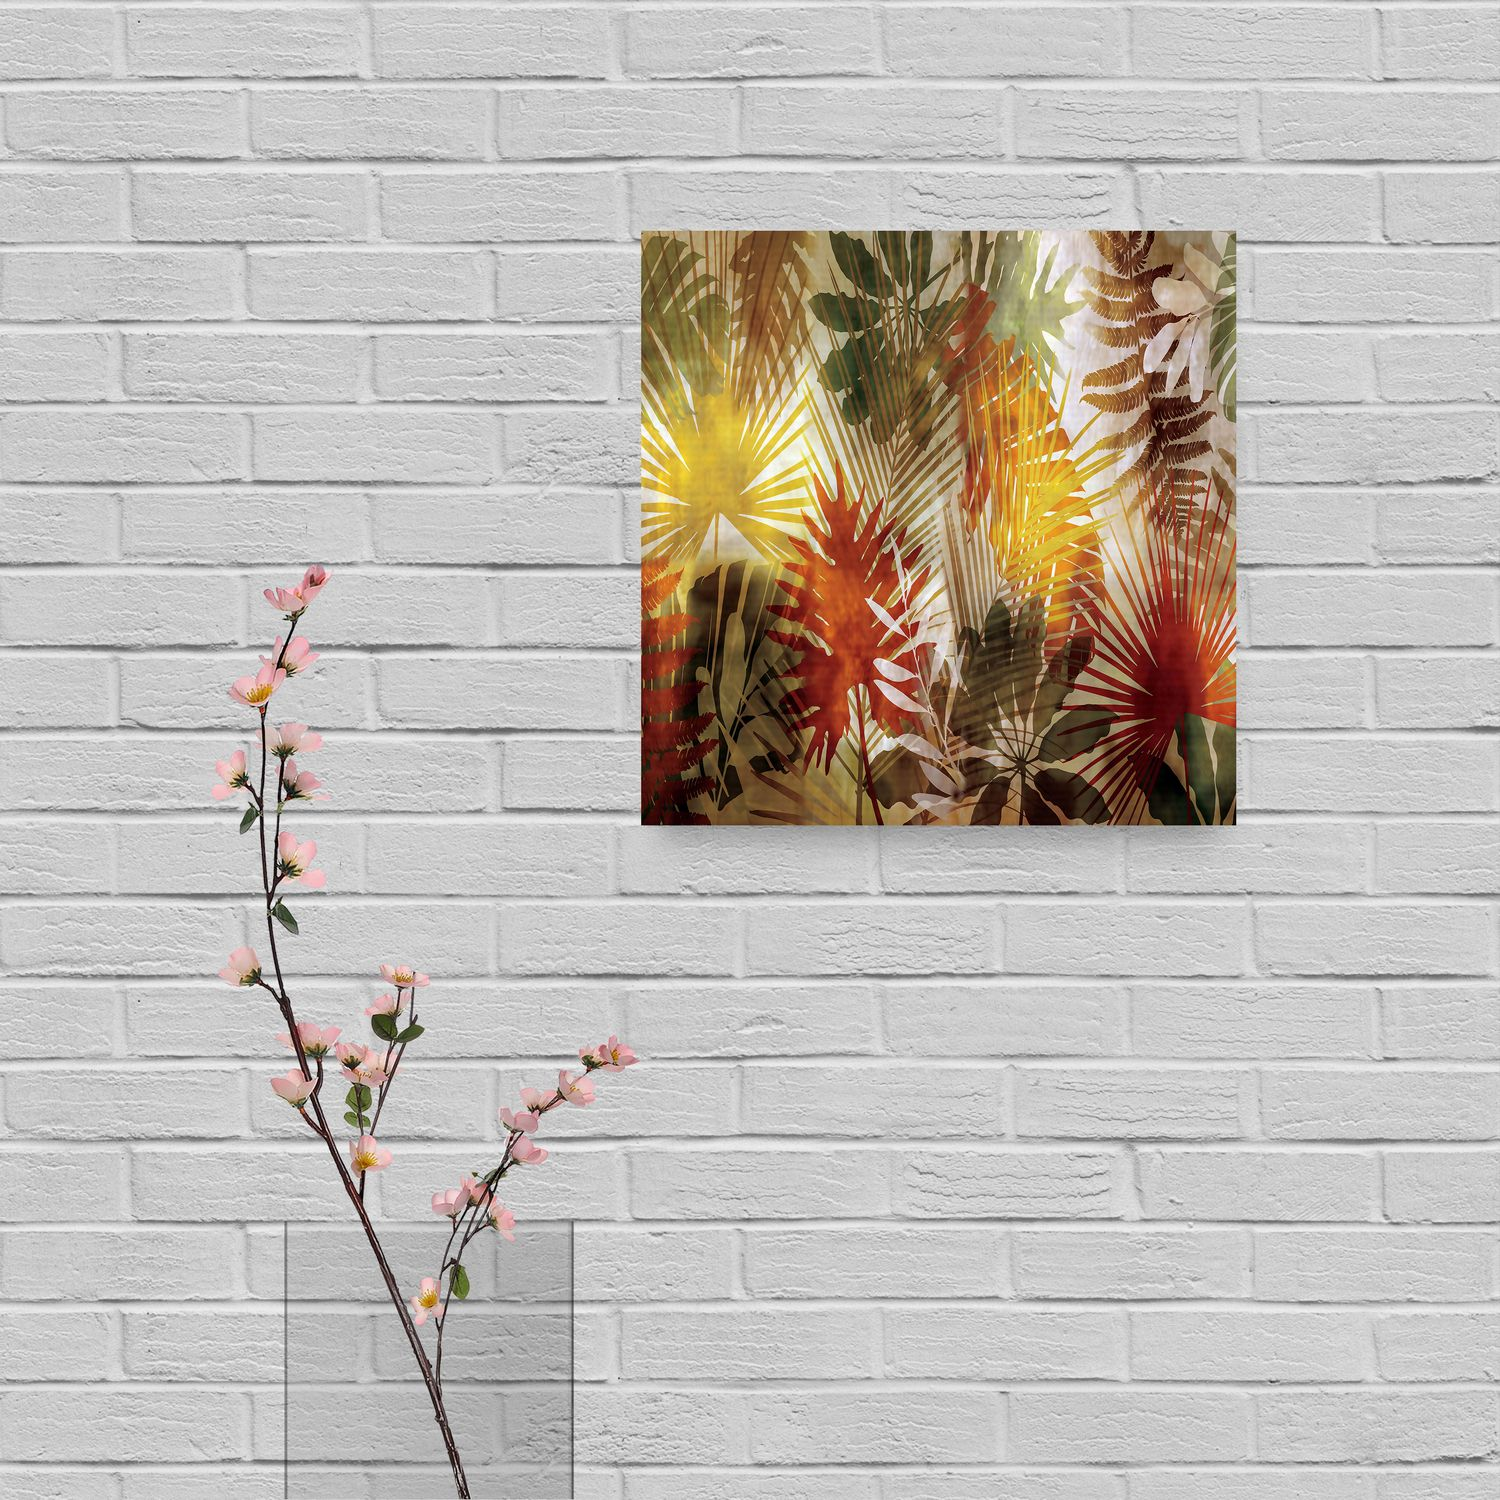 The Craft Company 1 Canvas Framed Painting Canvas Painting With Frame Buy The Craft Company 1 Canvas Framed Painting Canvas Painting With Frame At Best Price In India On Snapdeal